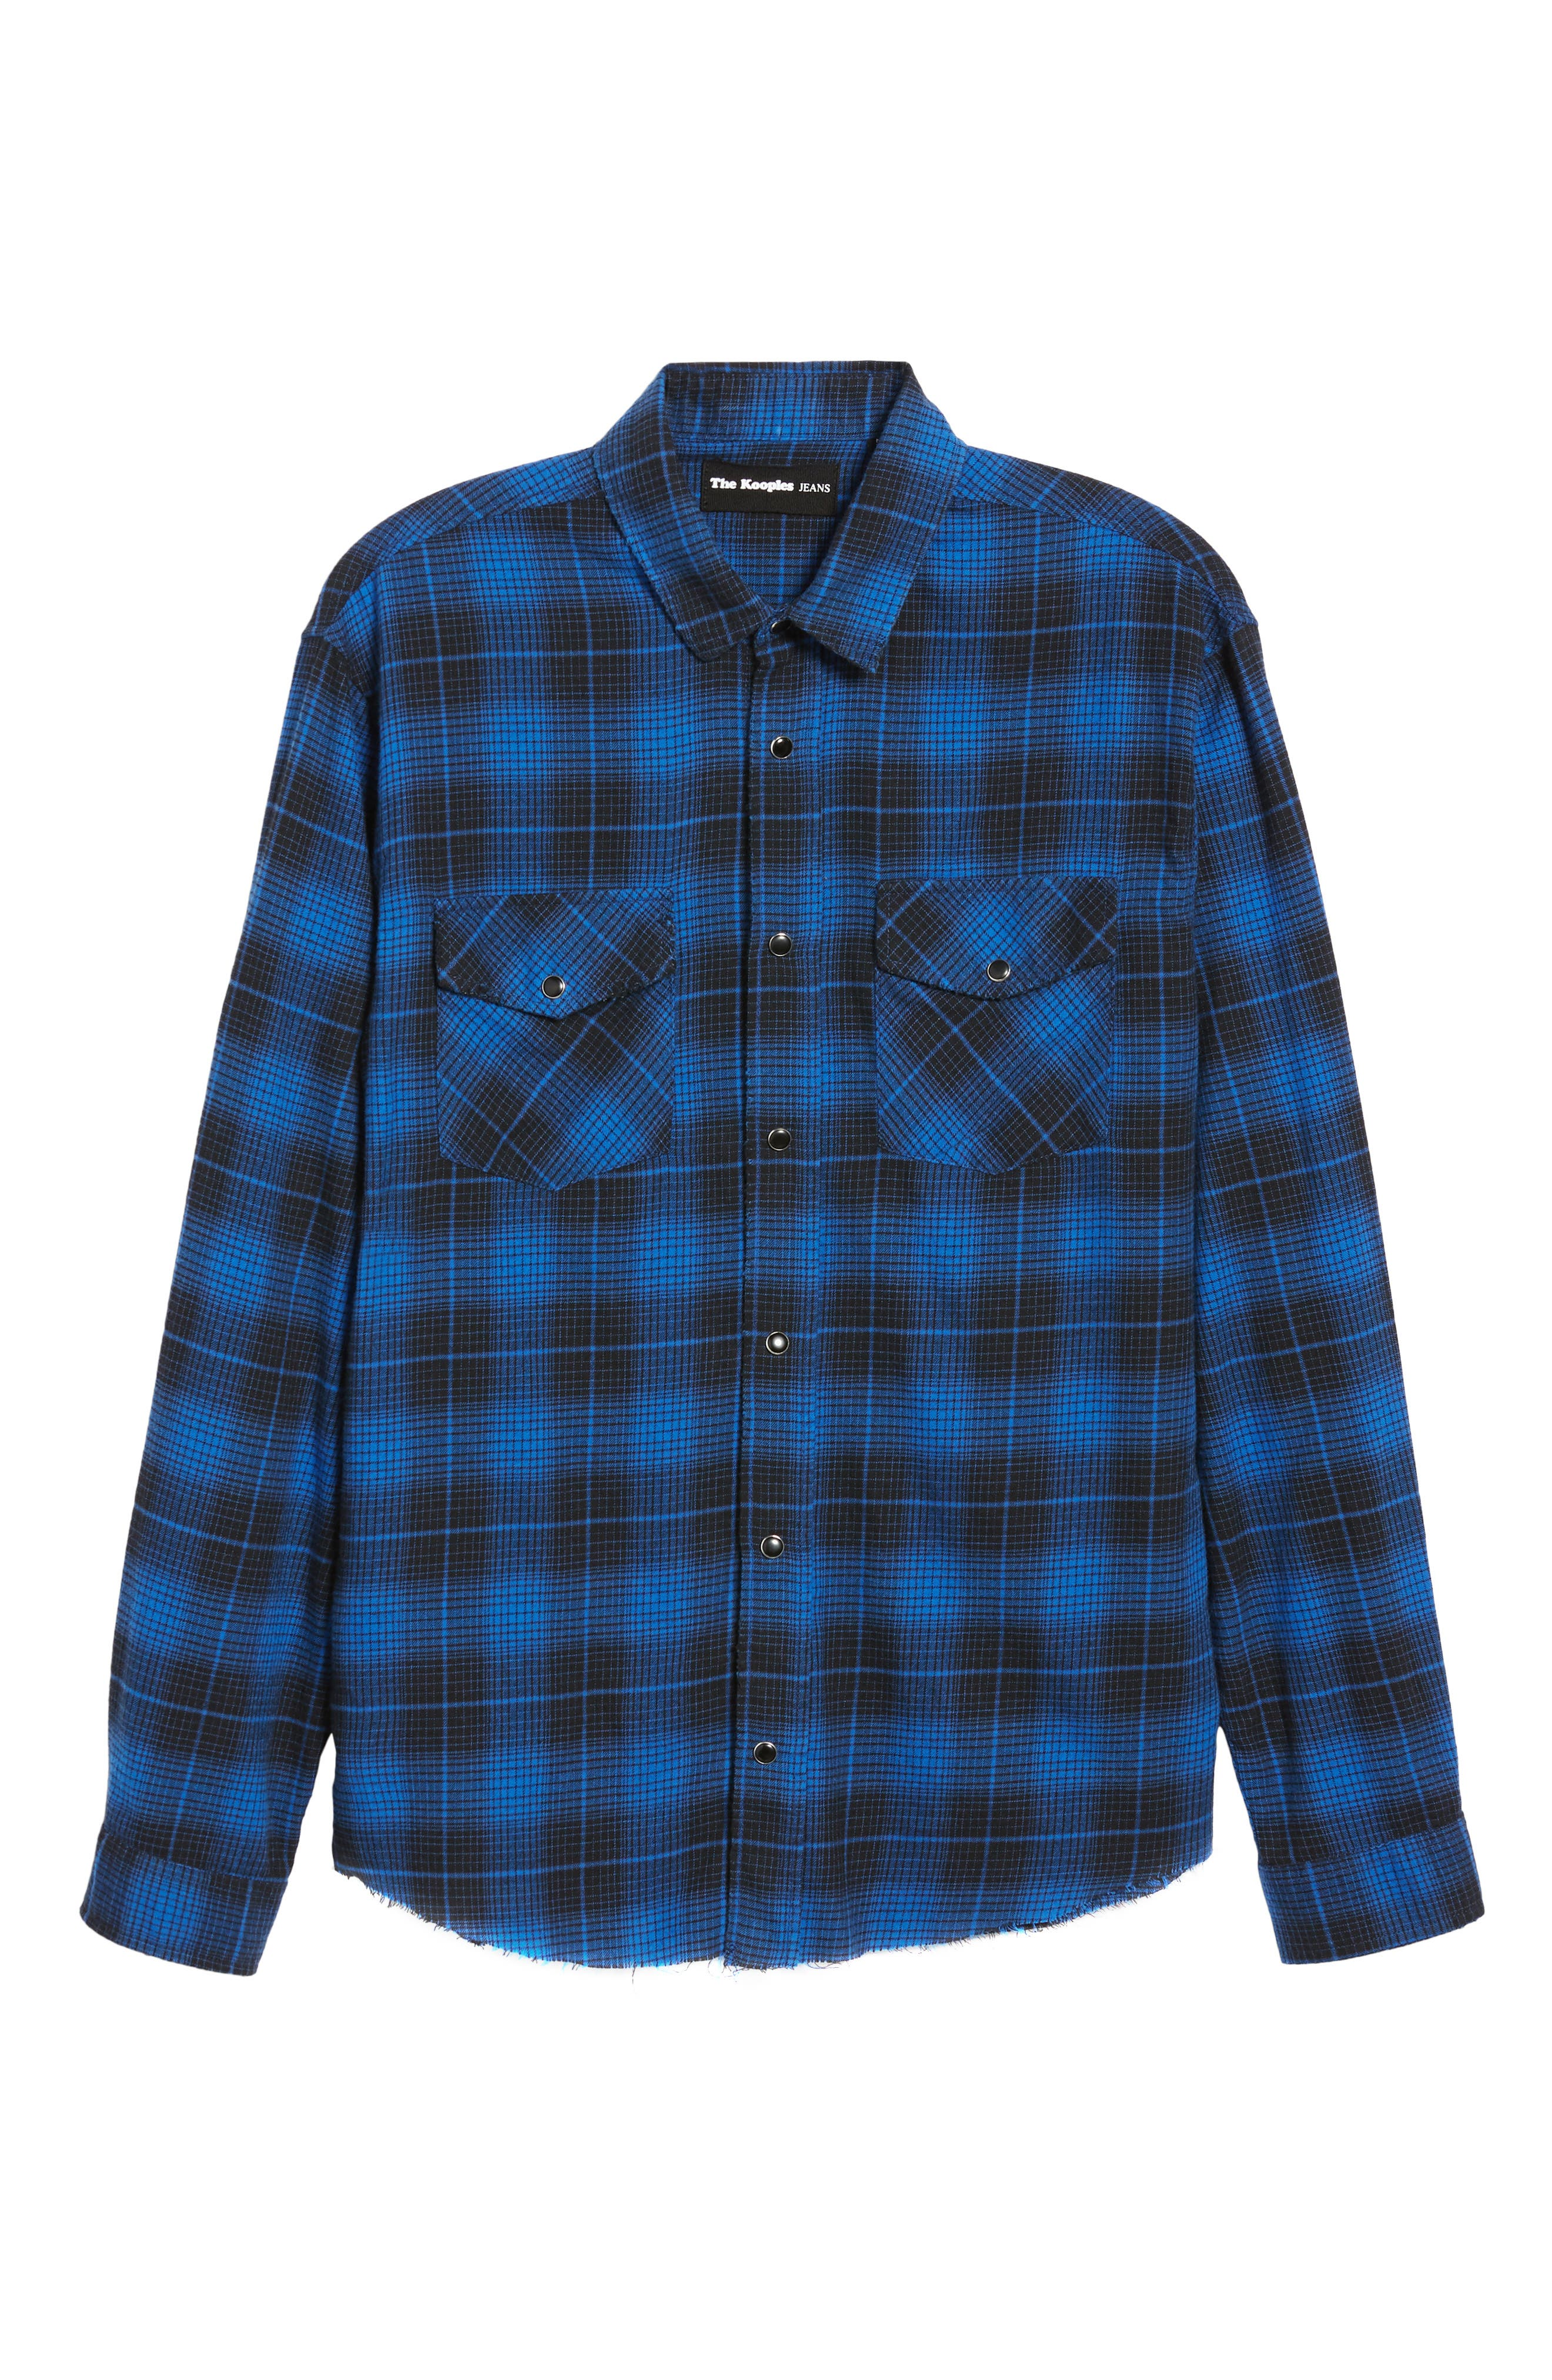 THE KOOPLES,                             Plaid Flannel Shirt,                             Alternate thumbnail 5, color,                             ROYAL BLUE / BLACK